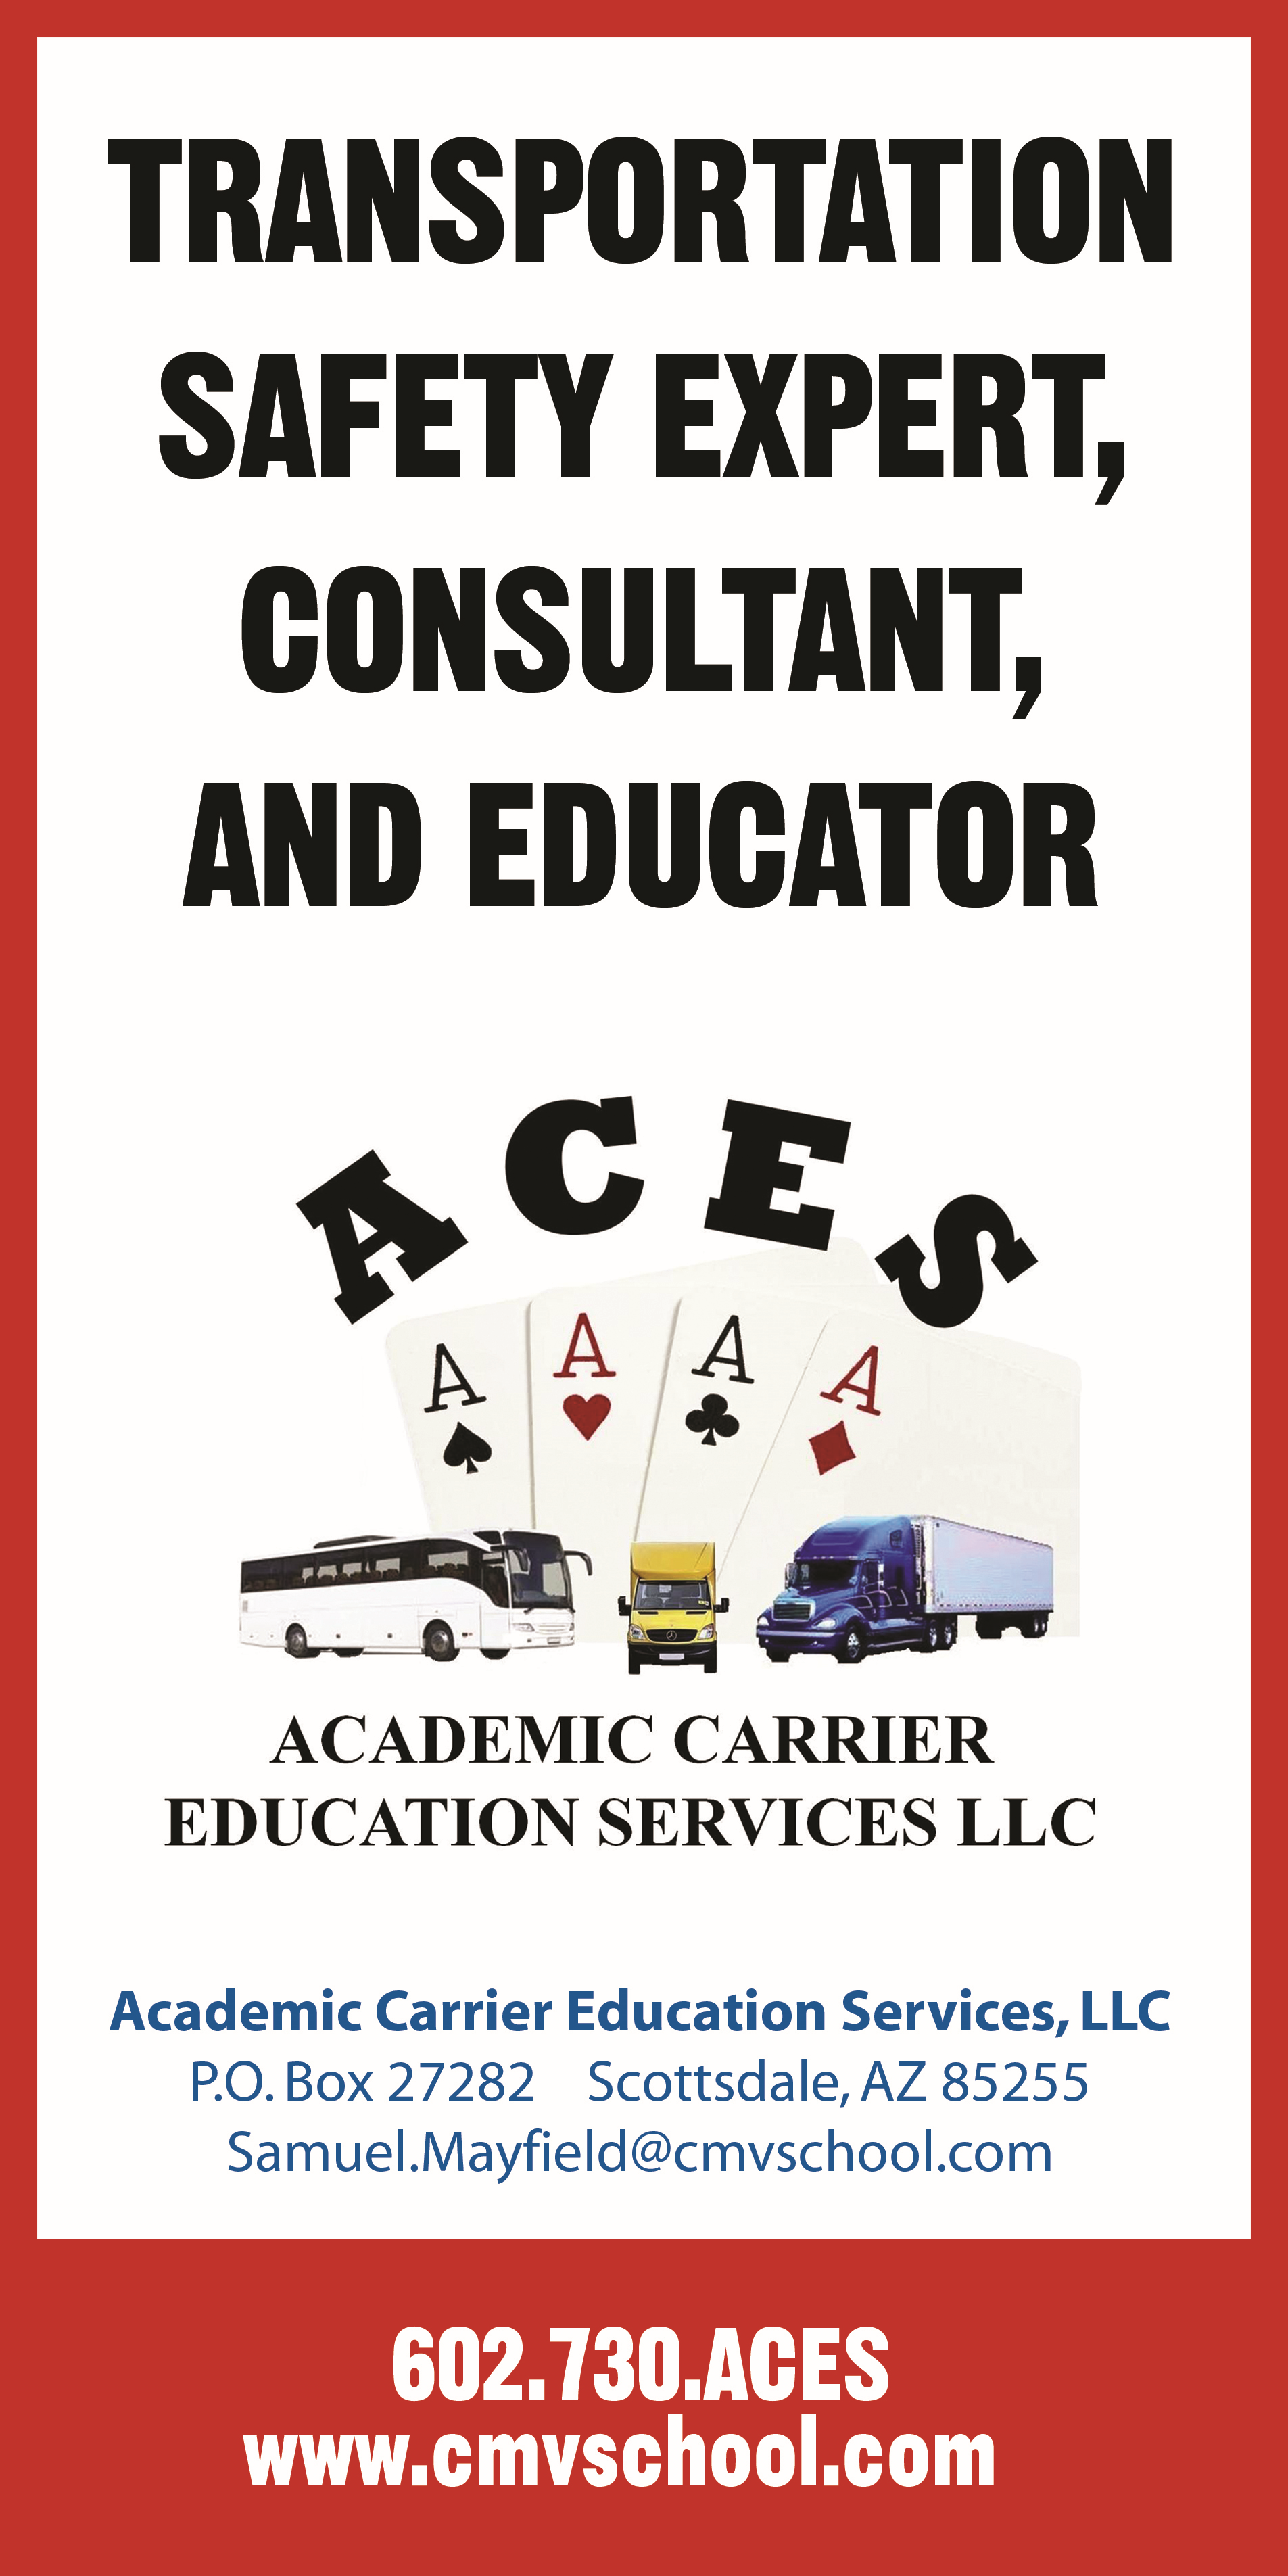 ACES Ad